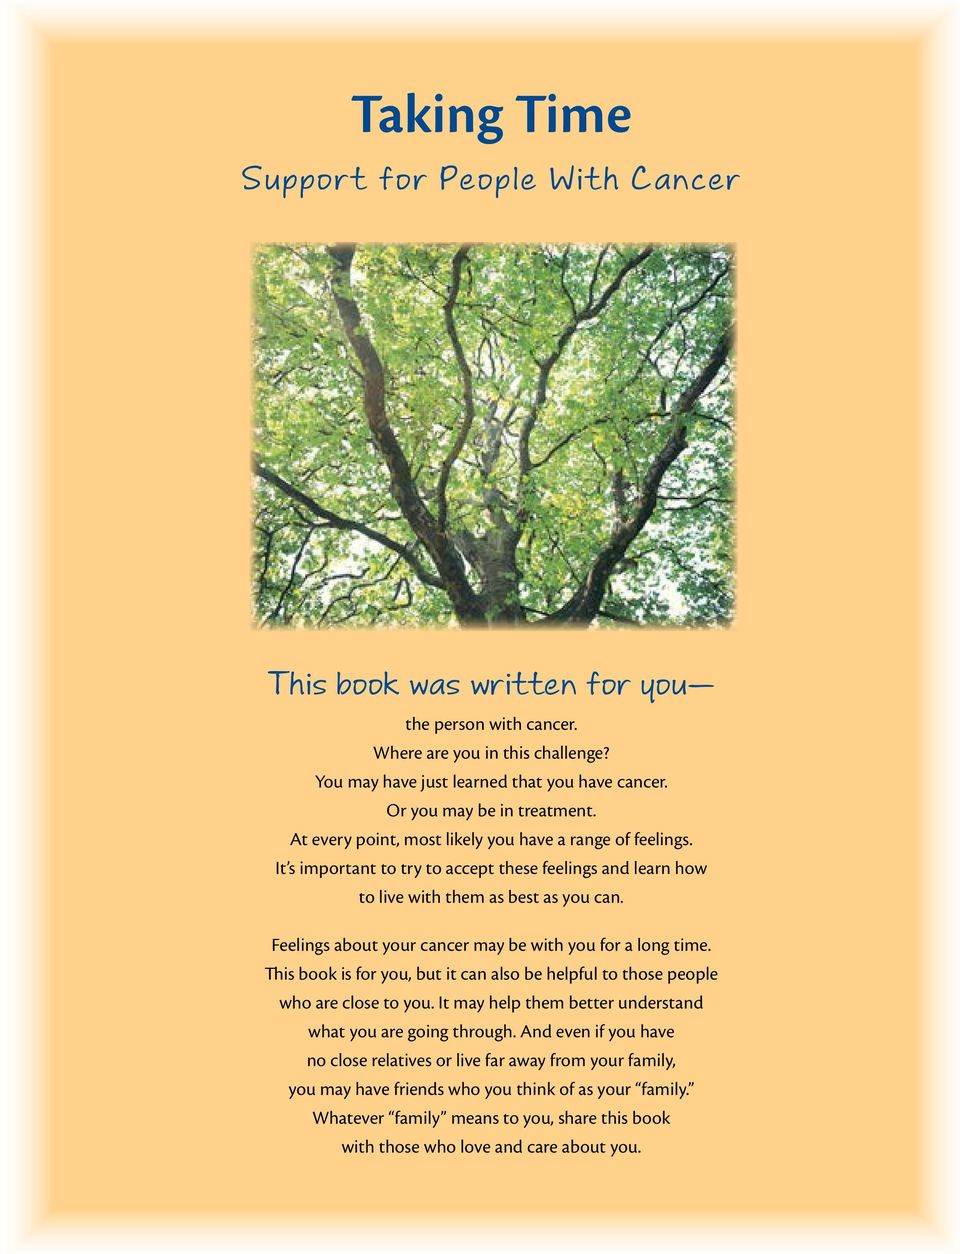 Feelings about your cancer may be with you for a long time. This book is for you, but it can also be helpful to those people who are close to you.